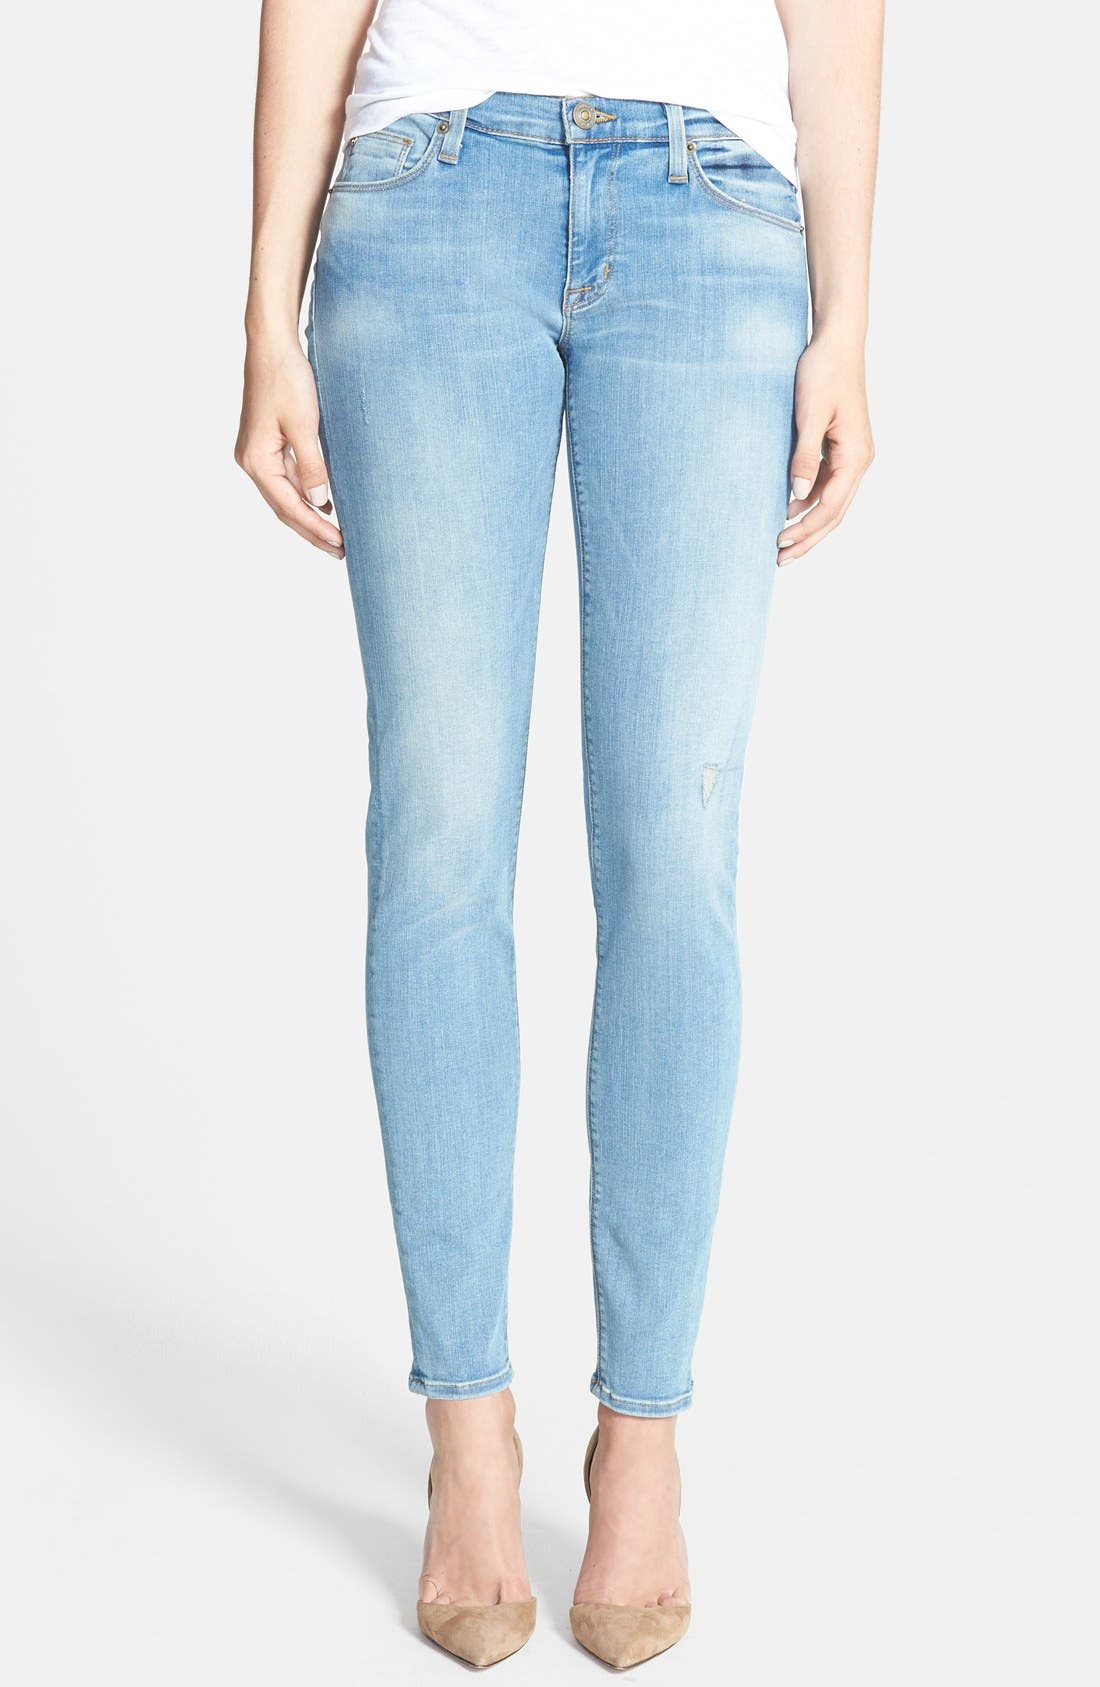 Main Image - Hudson Jeans 'Krista' Super Skinny Jeans (Mischief)